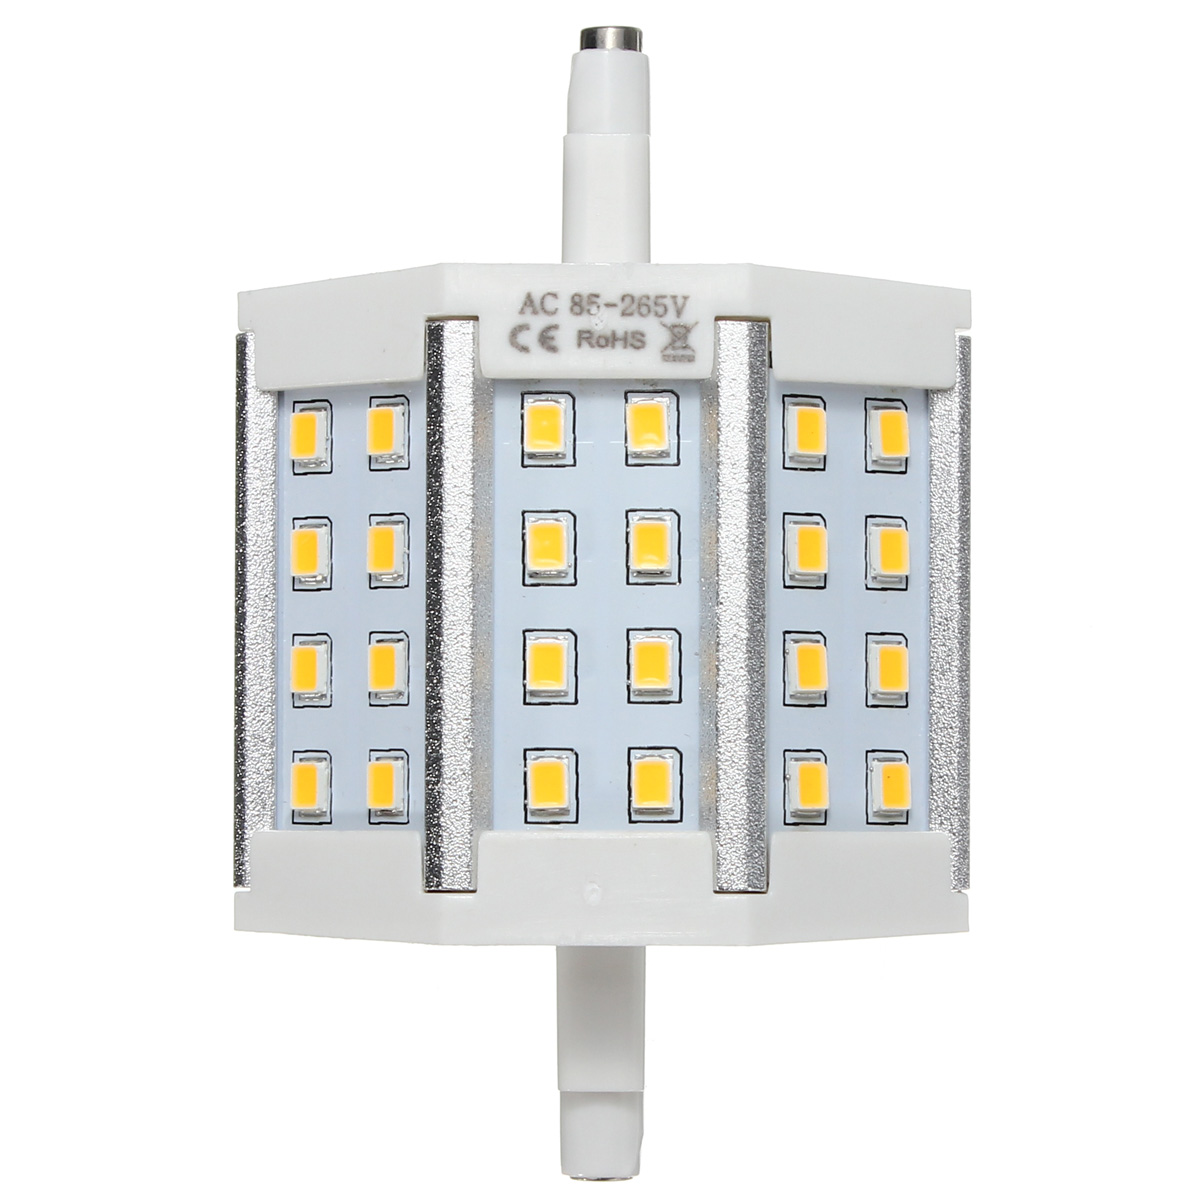 R7S 10W 24LEDS Bright 2835 440LM LED Bulb Flood Light Lamp Replacement AC 85-265V Non-Dimmable